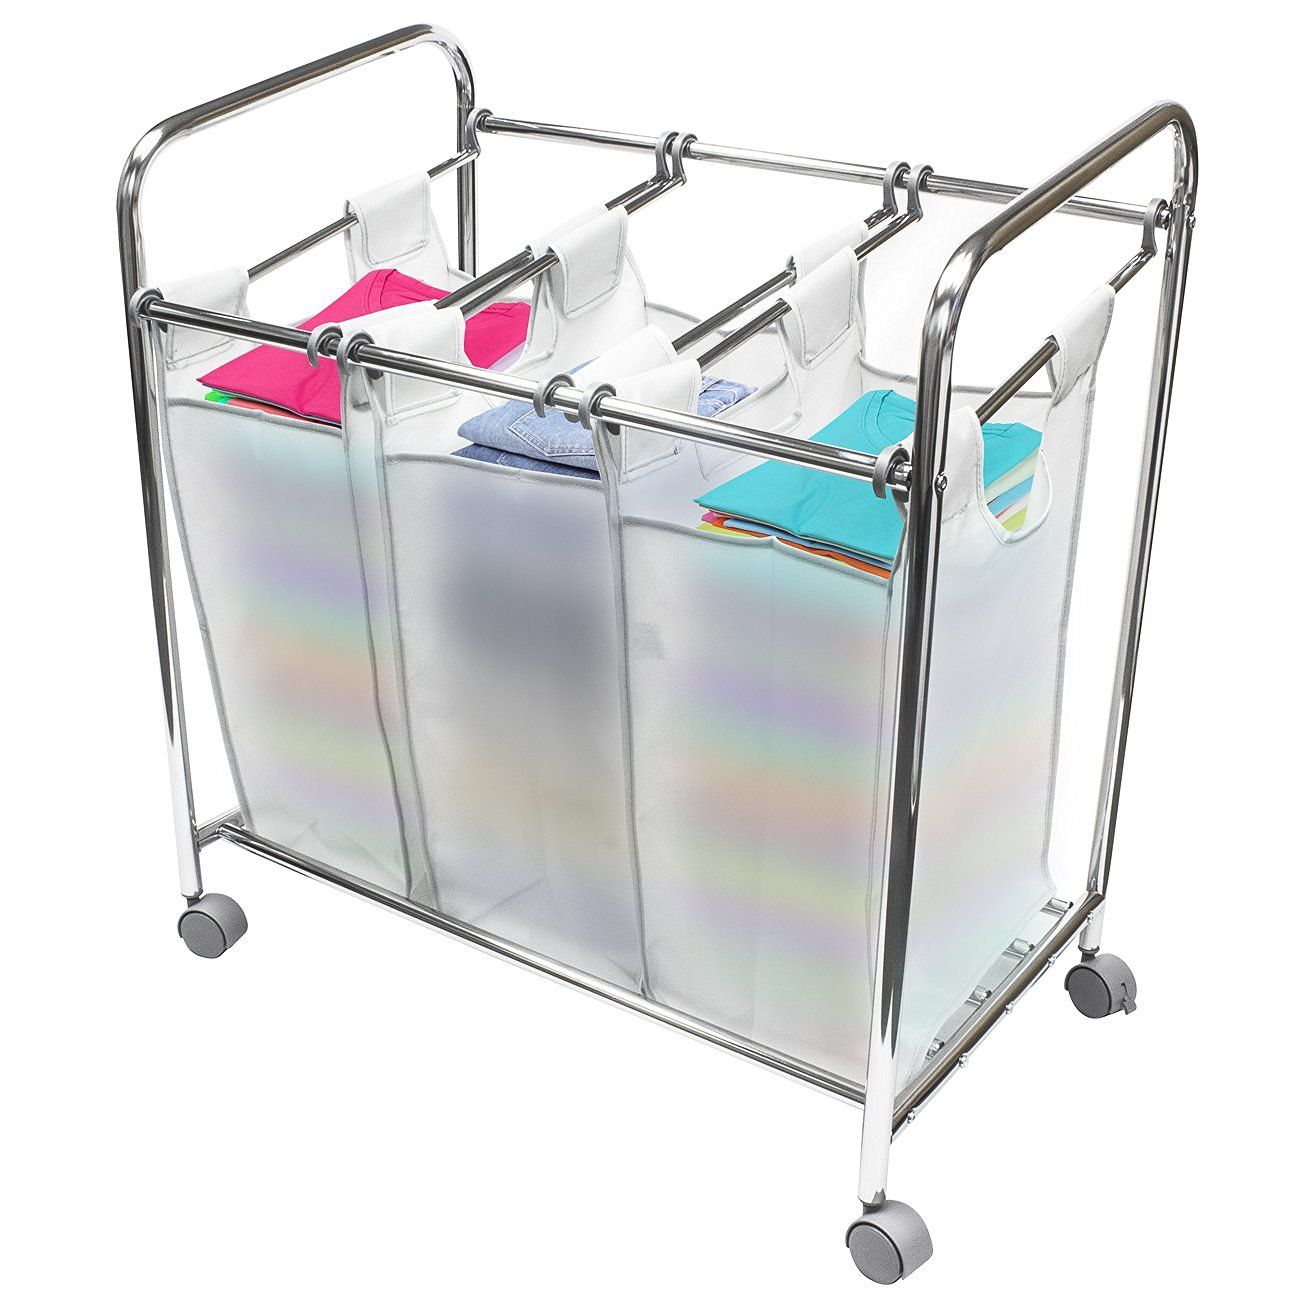 Amazon Com 33 L X 20 W X 33 H Sorbus Laundry Sorter Cart Basket Hamper On Wheels Clothes Organizer With 3 Removable Bags Laundry Sorter Laundry Hamper Organization